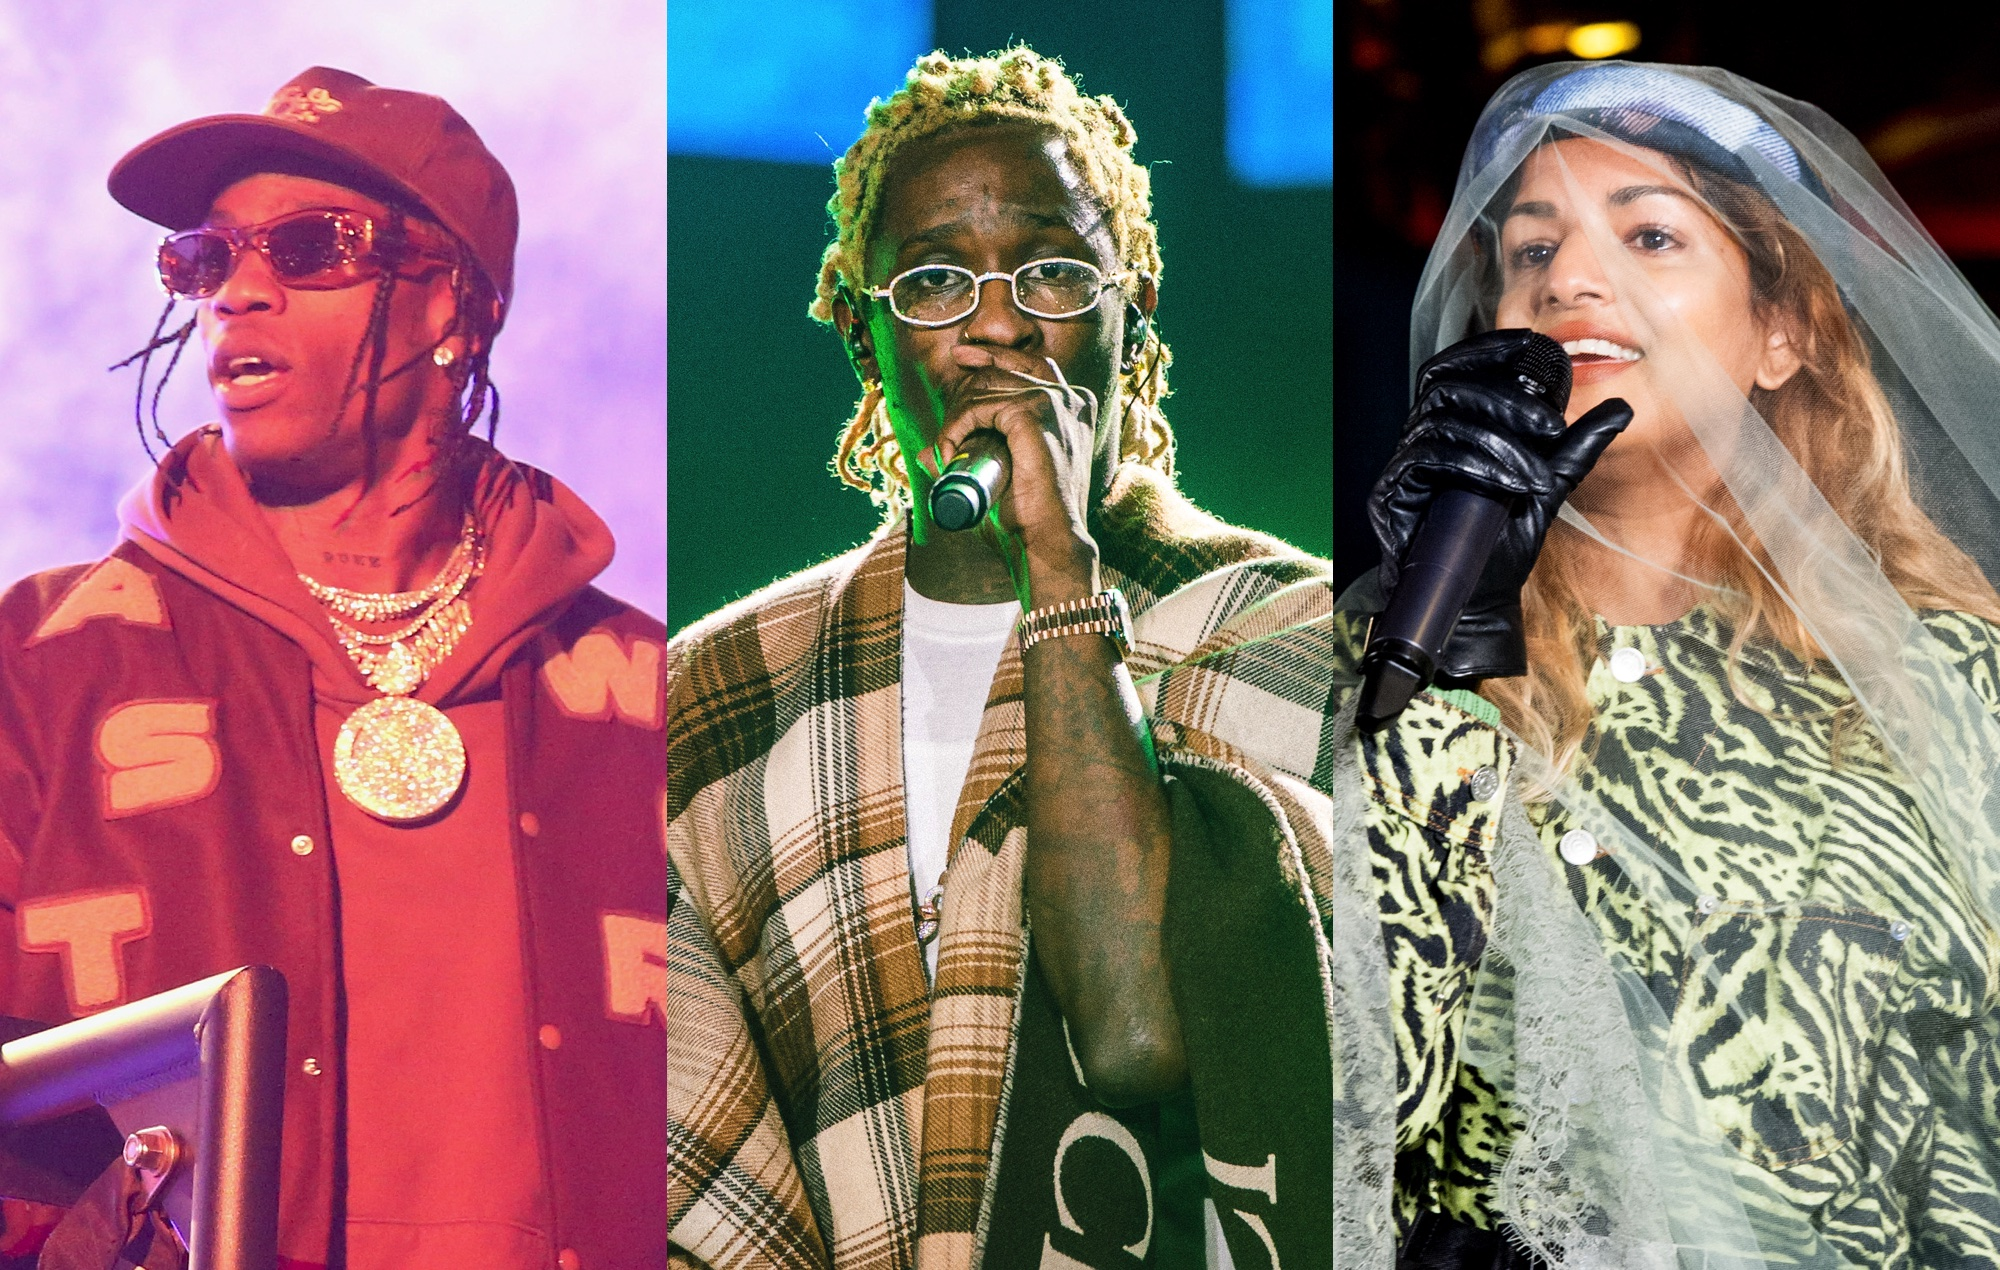 Travis Scott, Young Thug & M.I.A